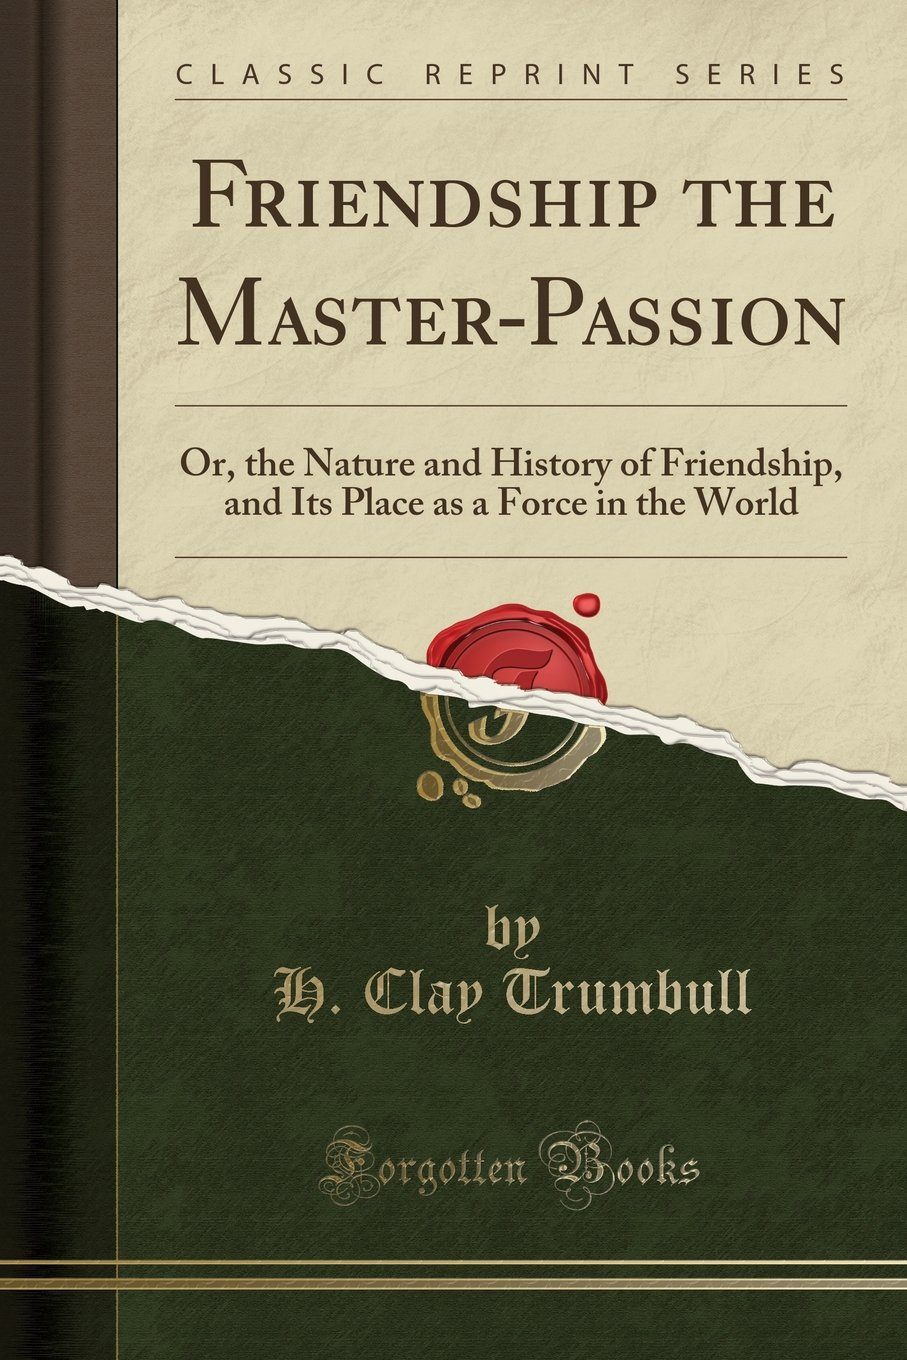 Read Online Friendship the Master-Passion: Or, the Nature and History of Friendship, and Its Place as a Force in the World (Classic Reprint) ebook